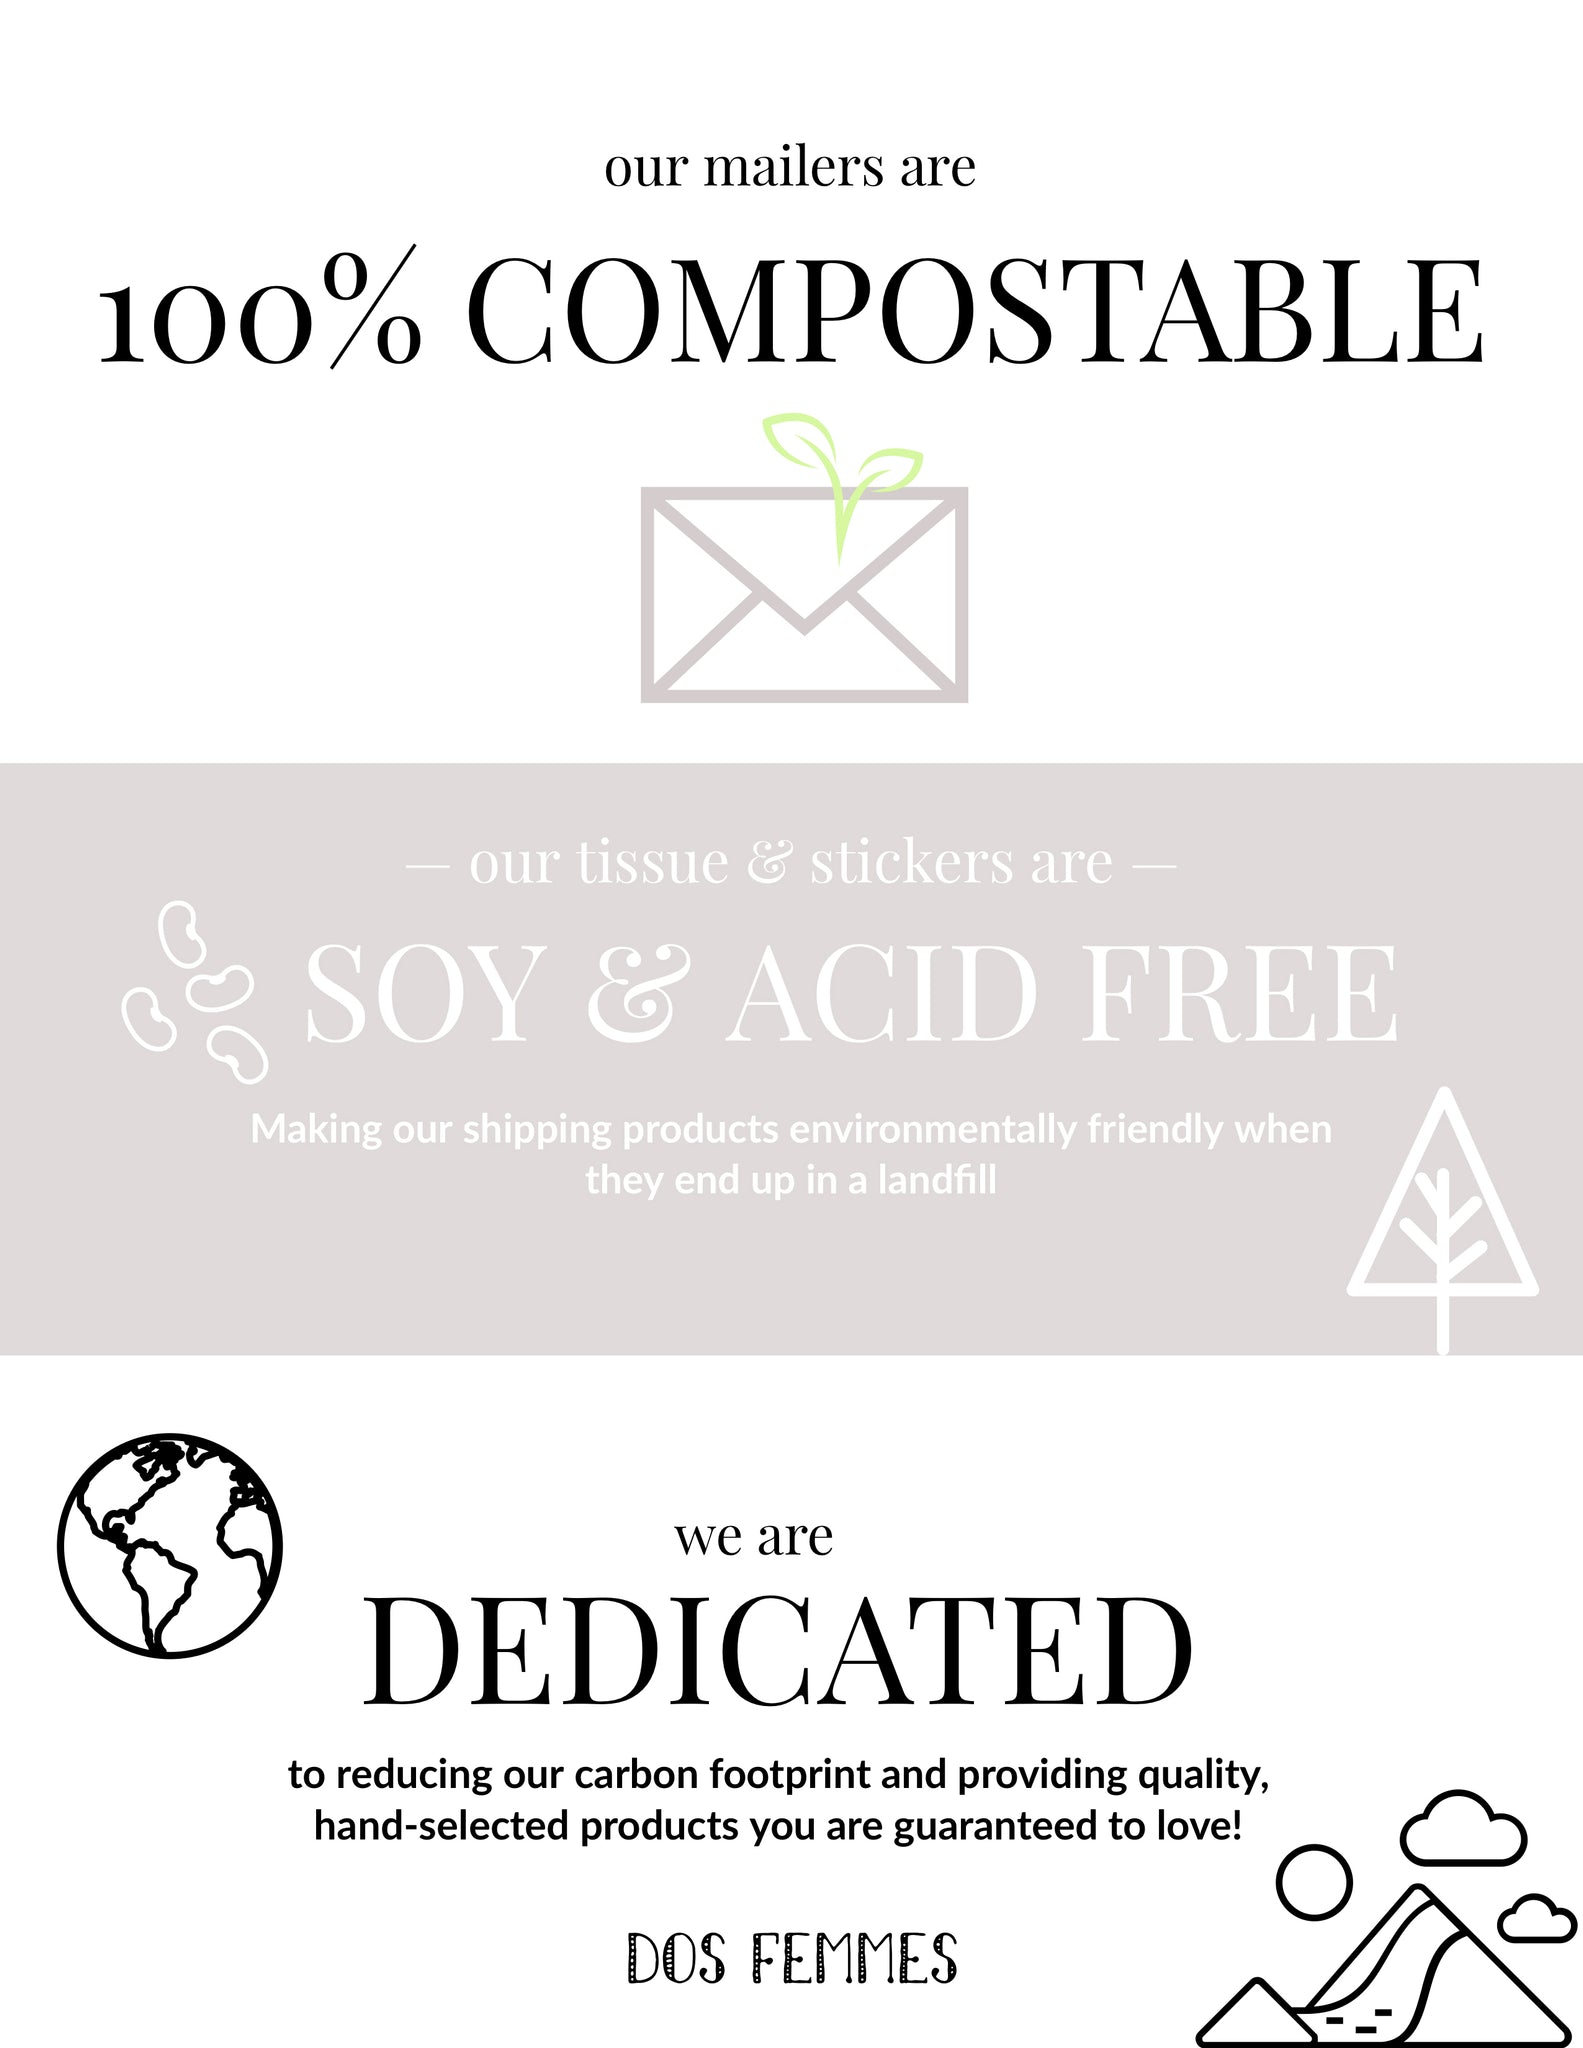 Dos Femmes uses environmentally friendly shipping and packing products, always looking to reduce our carbon footprint.